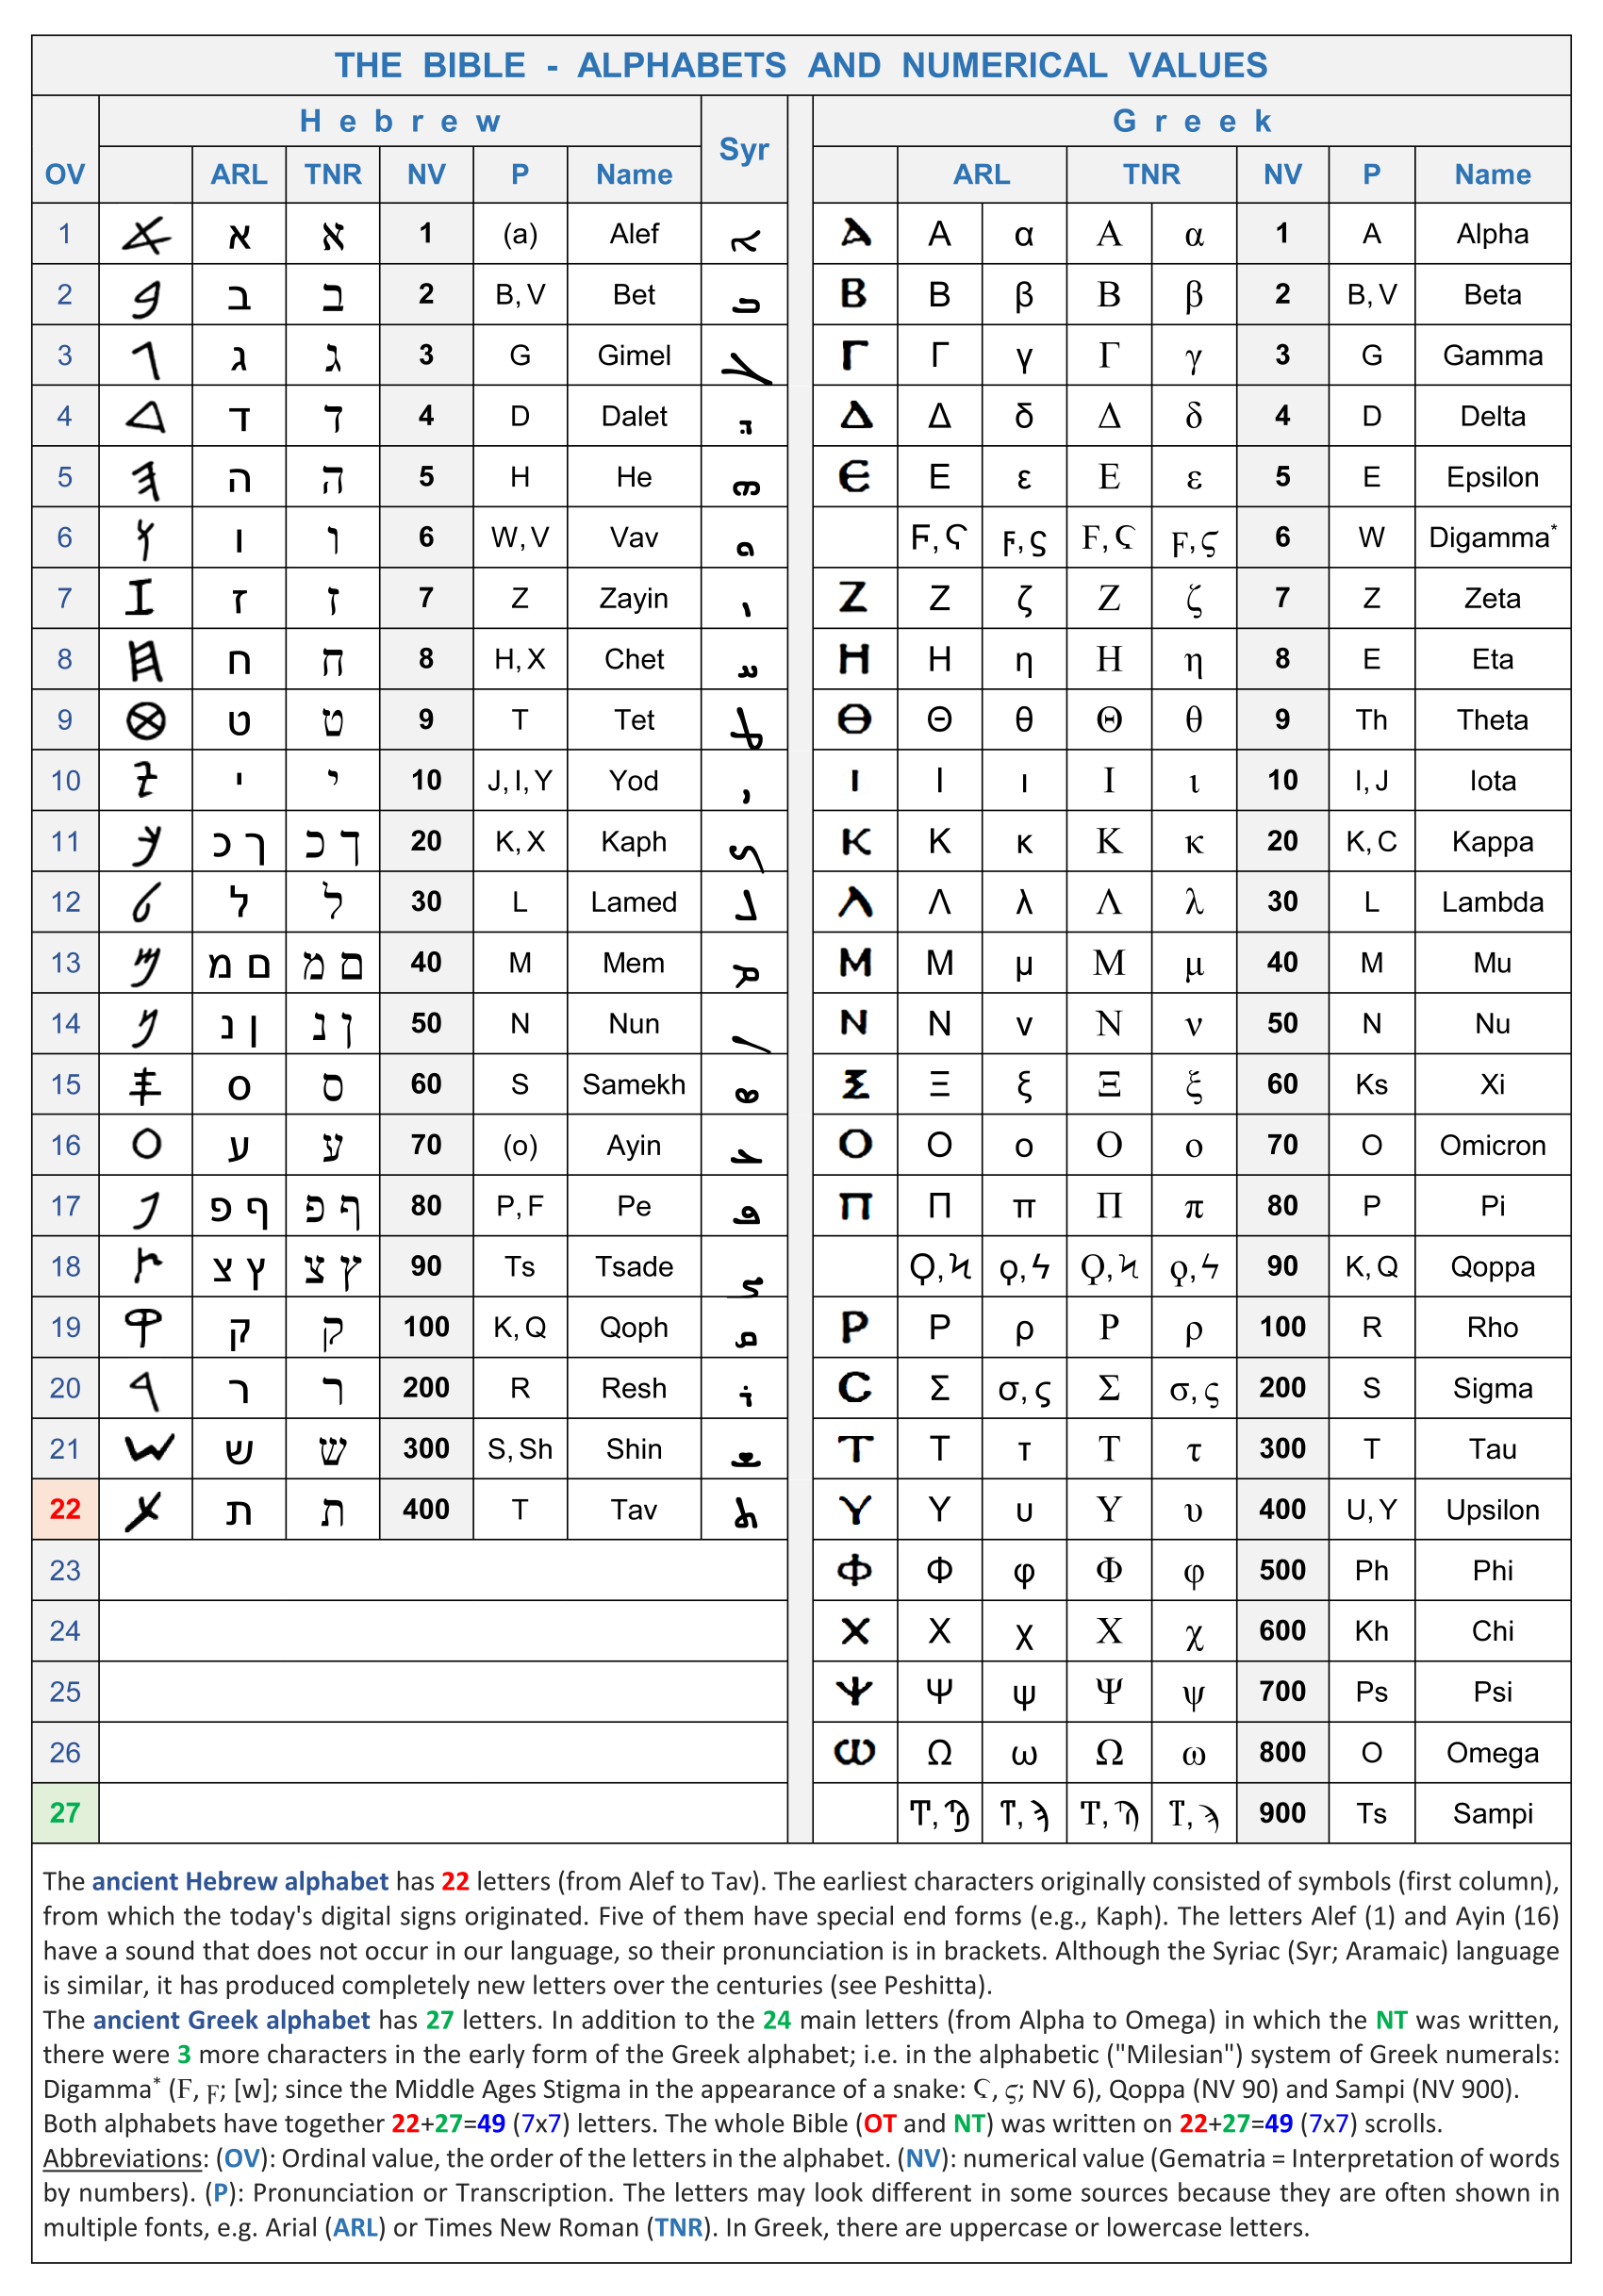 Hebrew and Greek Alphabet and Numerical Values - Divisions